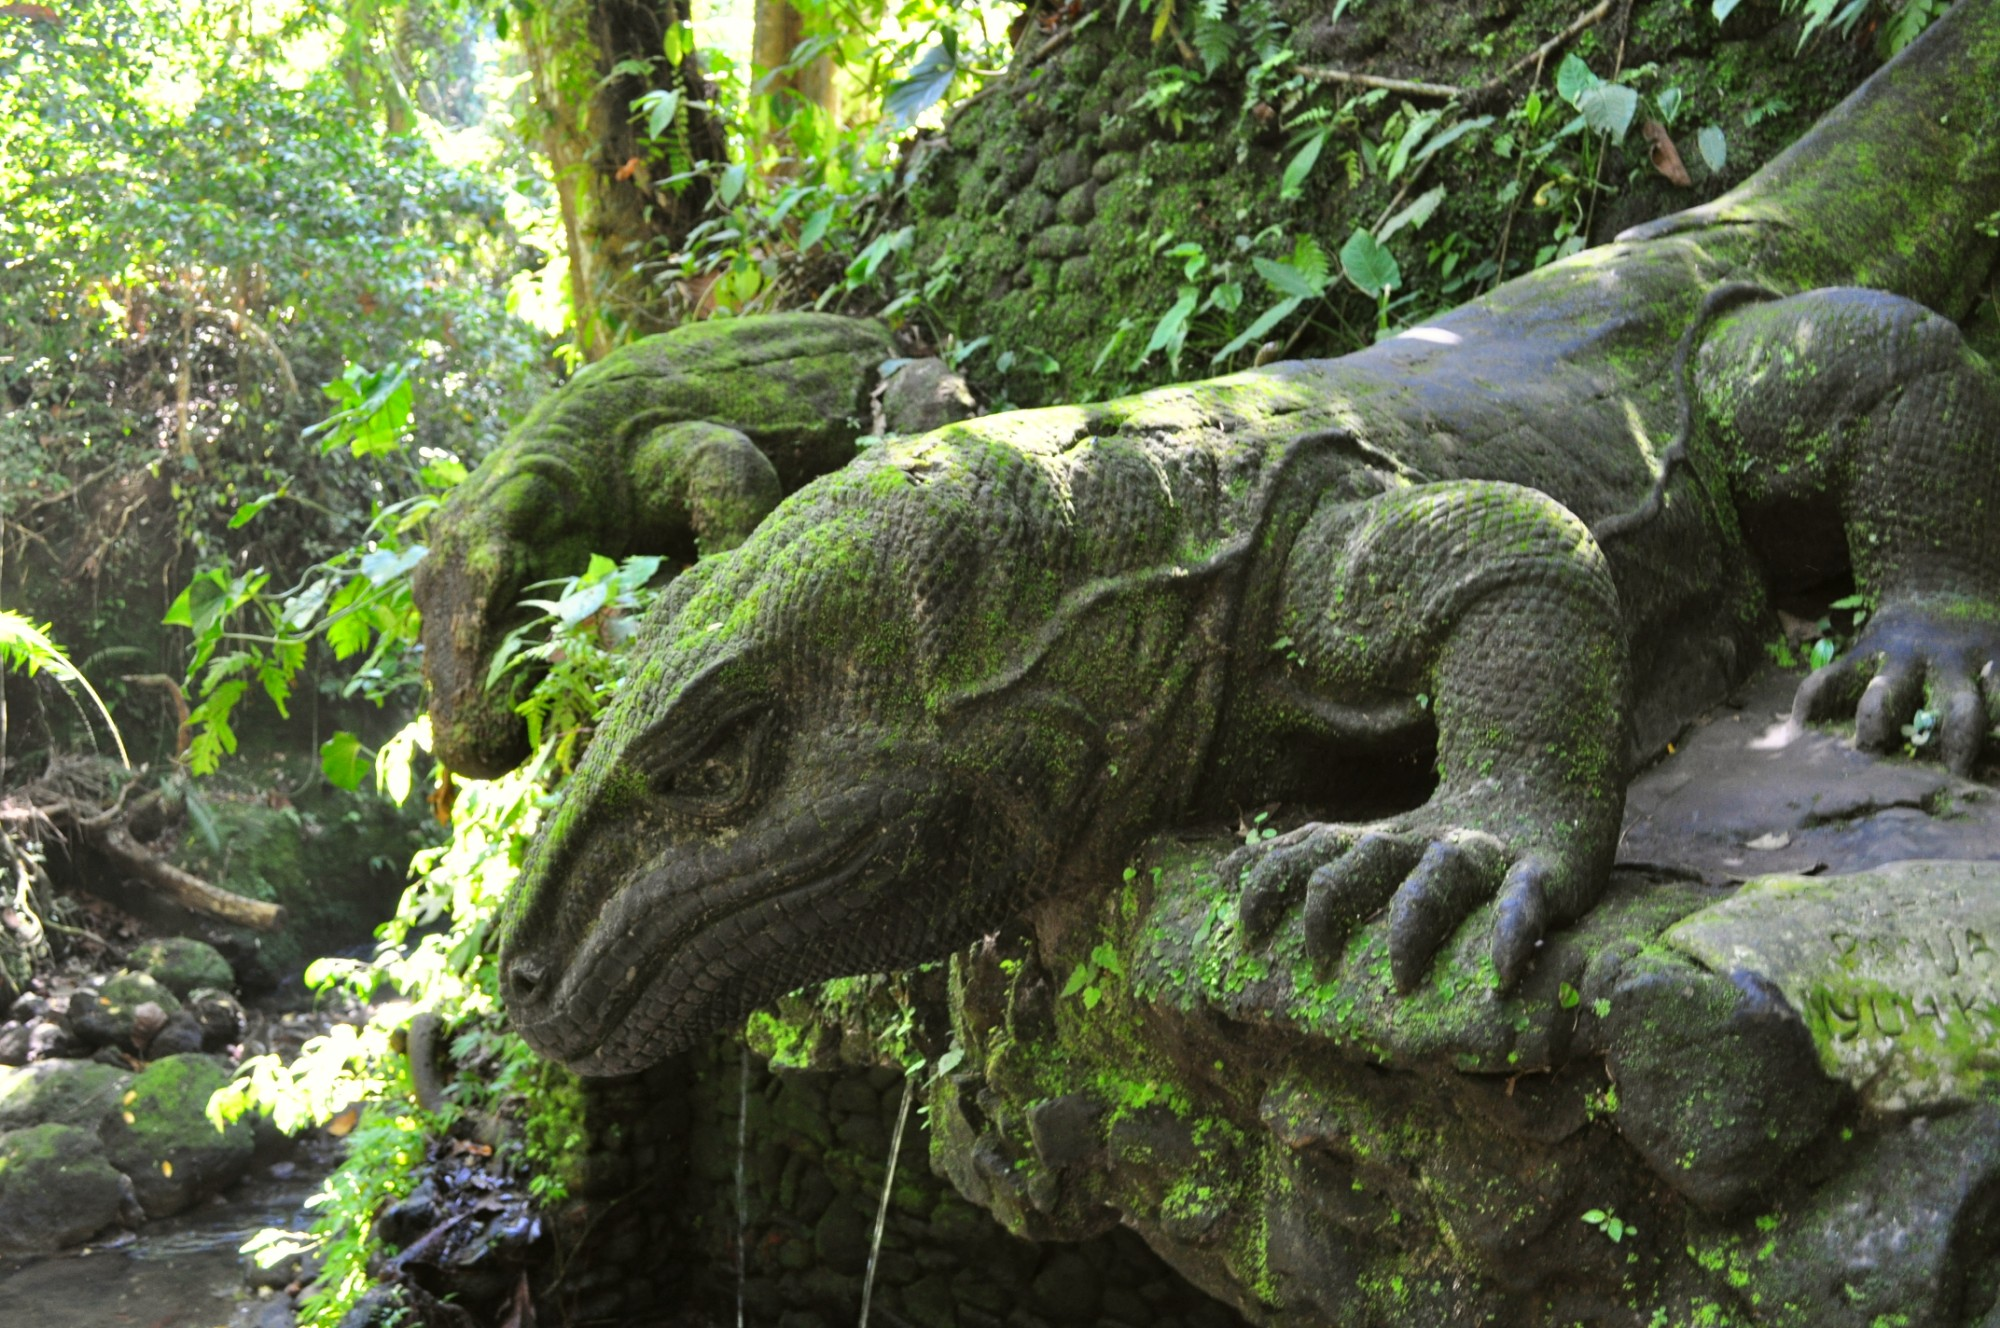 Statue of Komodo dragons in Ubud, Bali